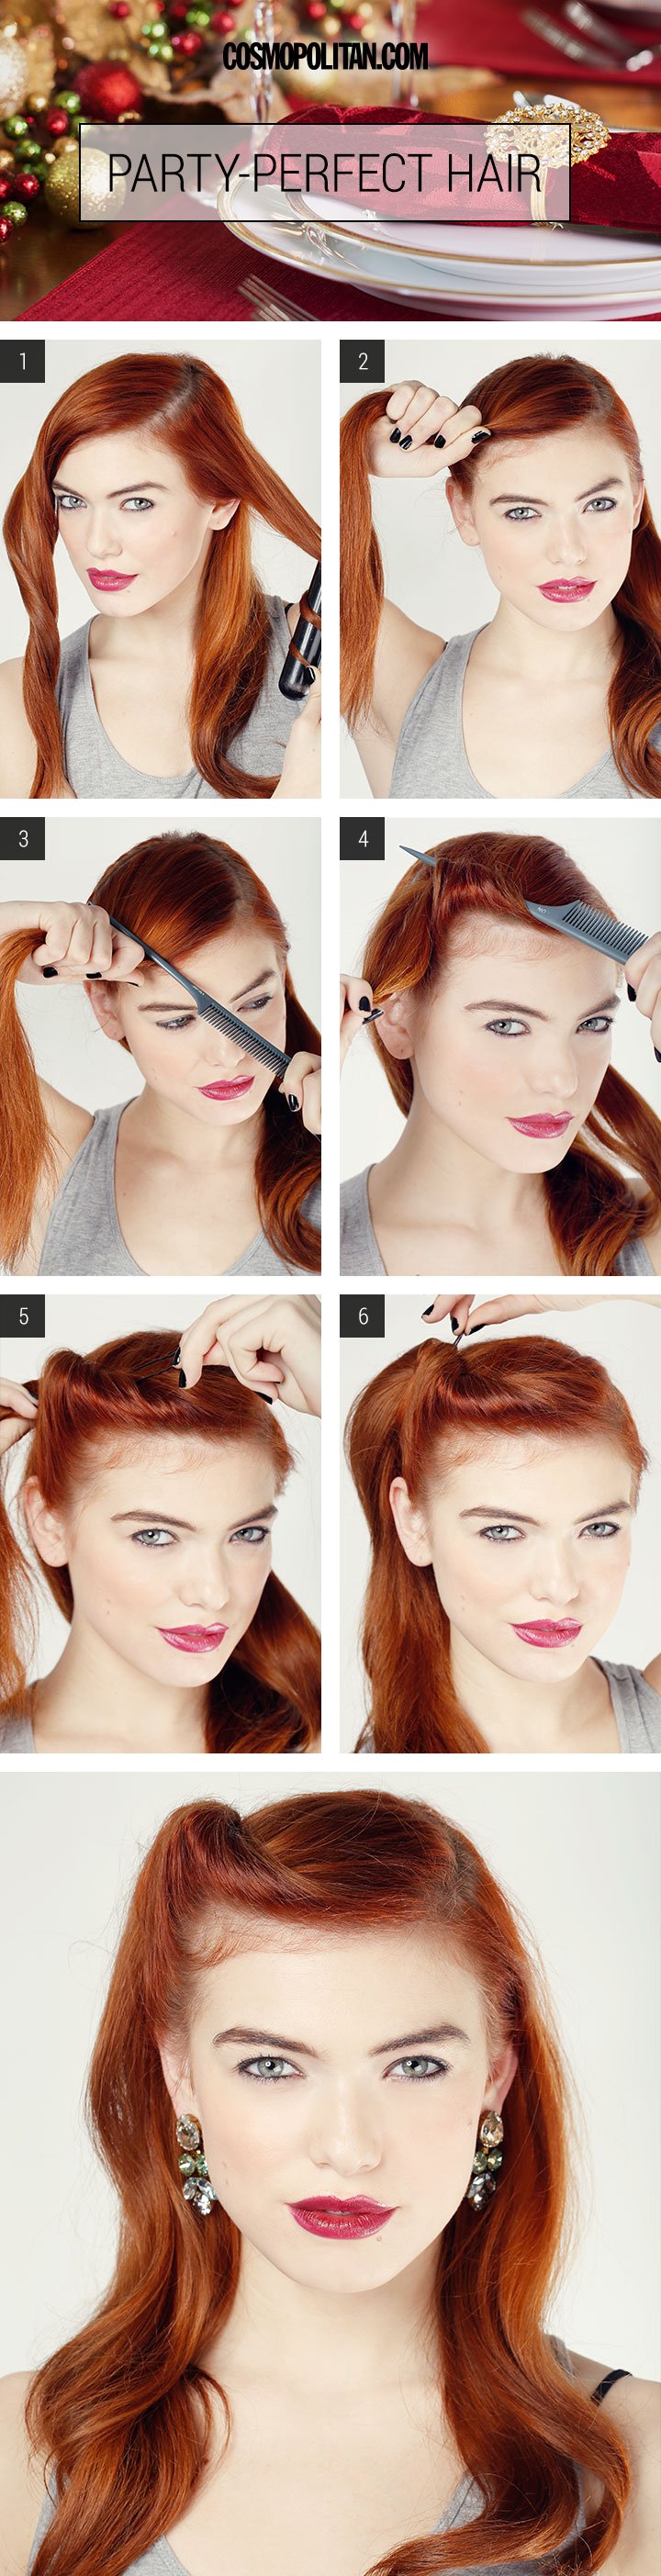 5 Minute Girl Hairstyles Five minute hairstyles for busy mornings